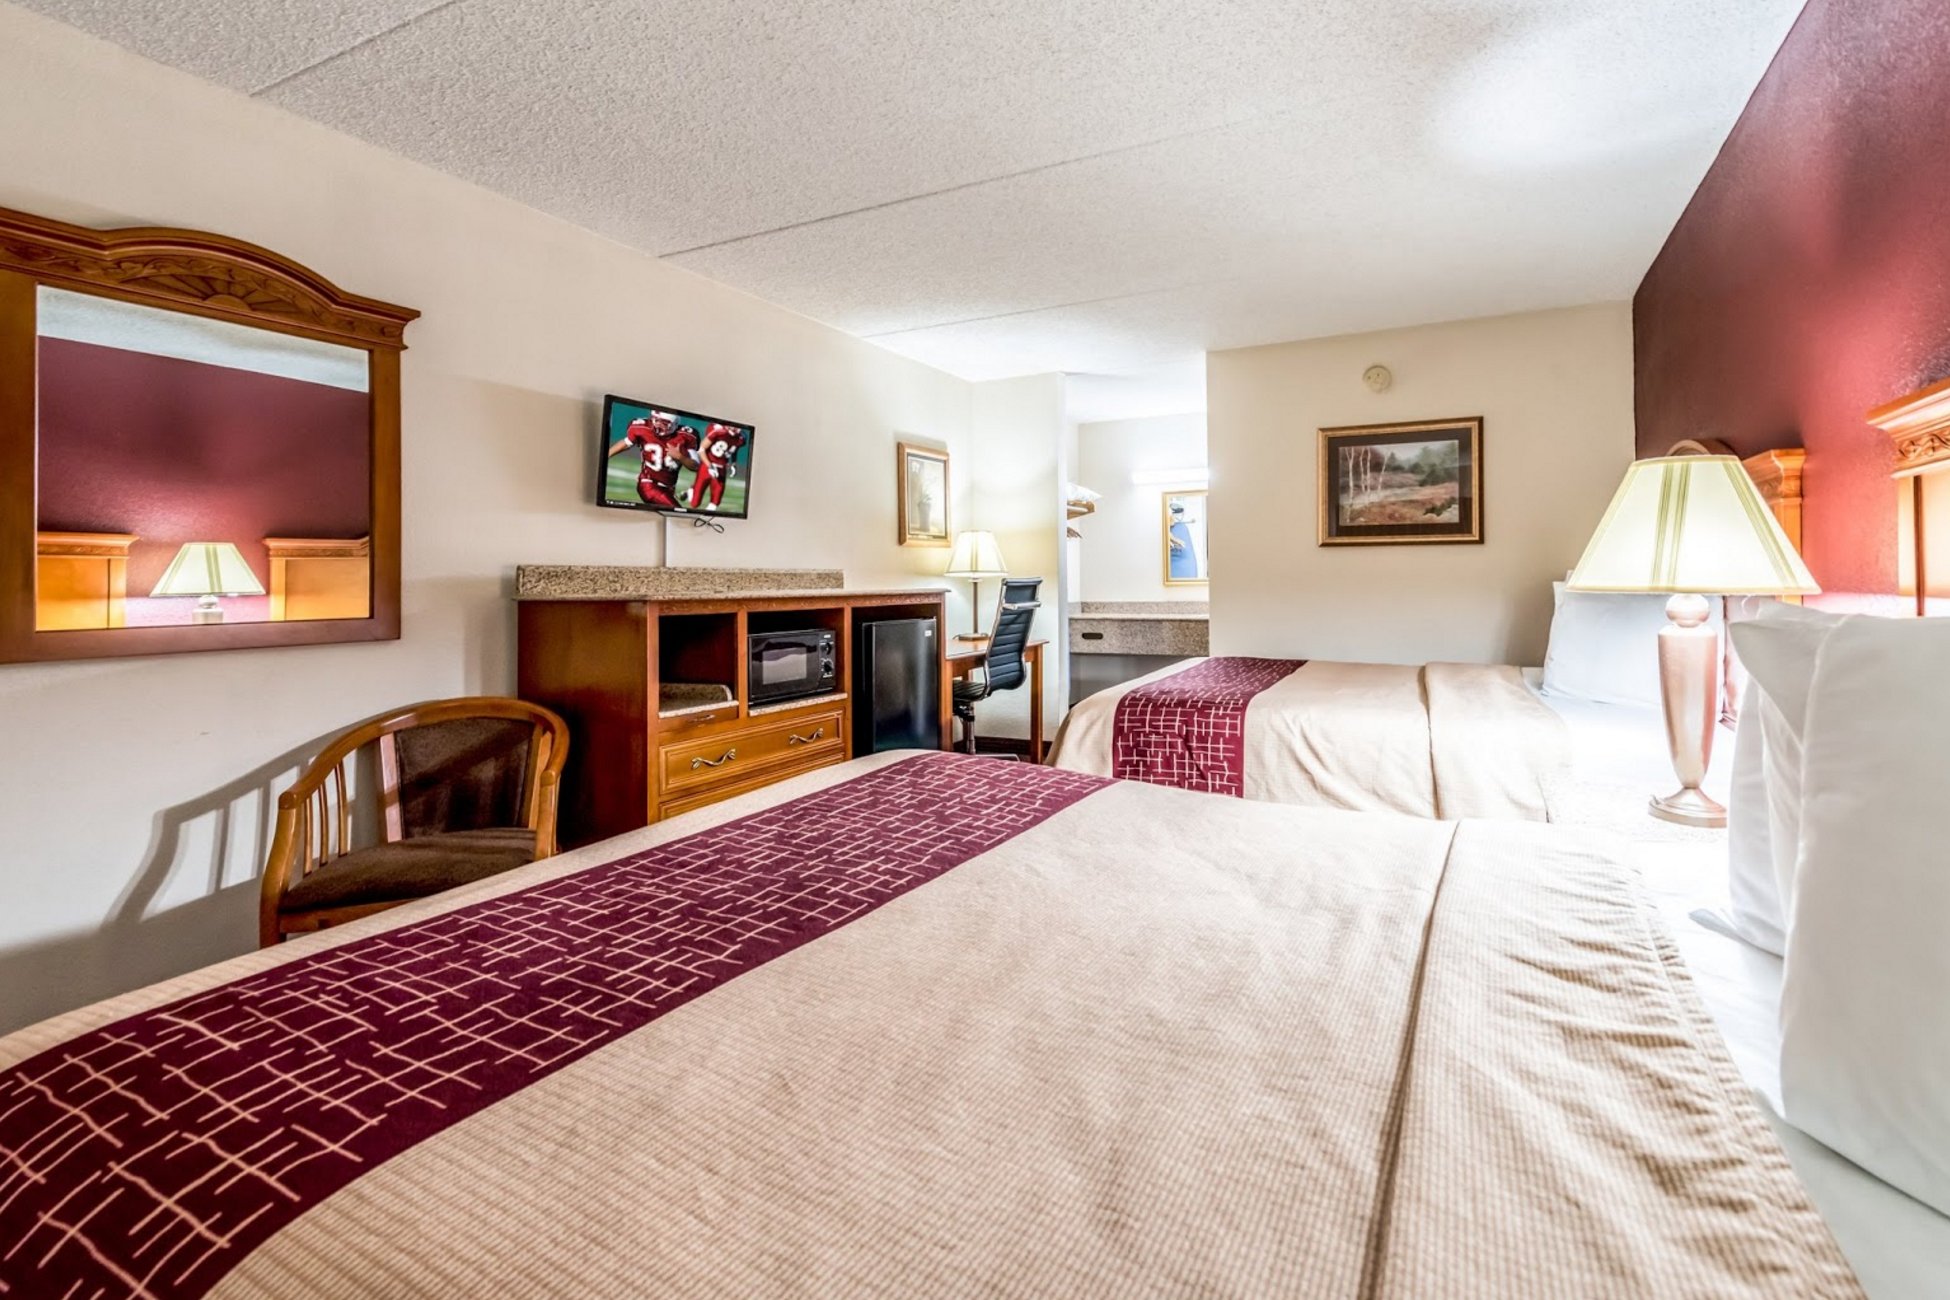 Red Roof Inn U0026 Suites Pigeon Featured. Bve Pigeon Forge  Tennessee The Island Great Smokey